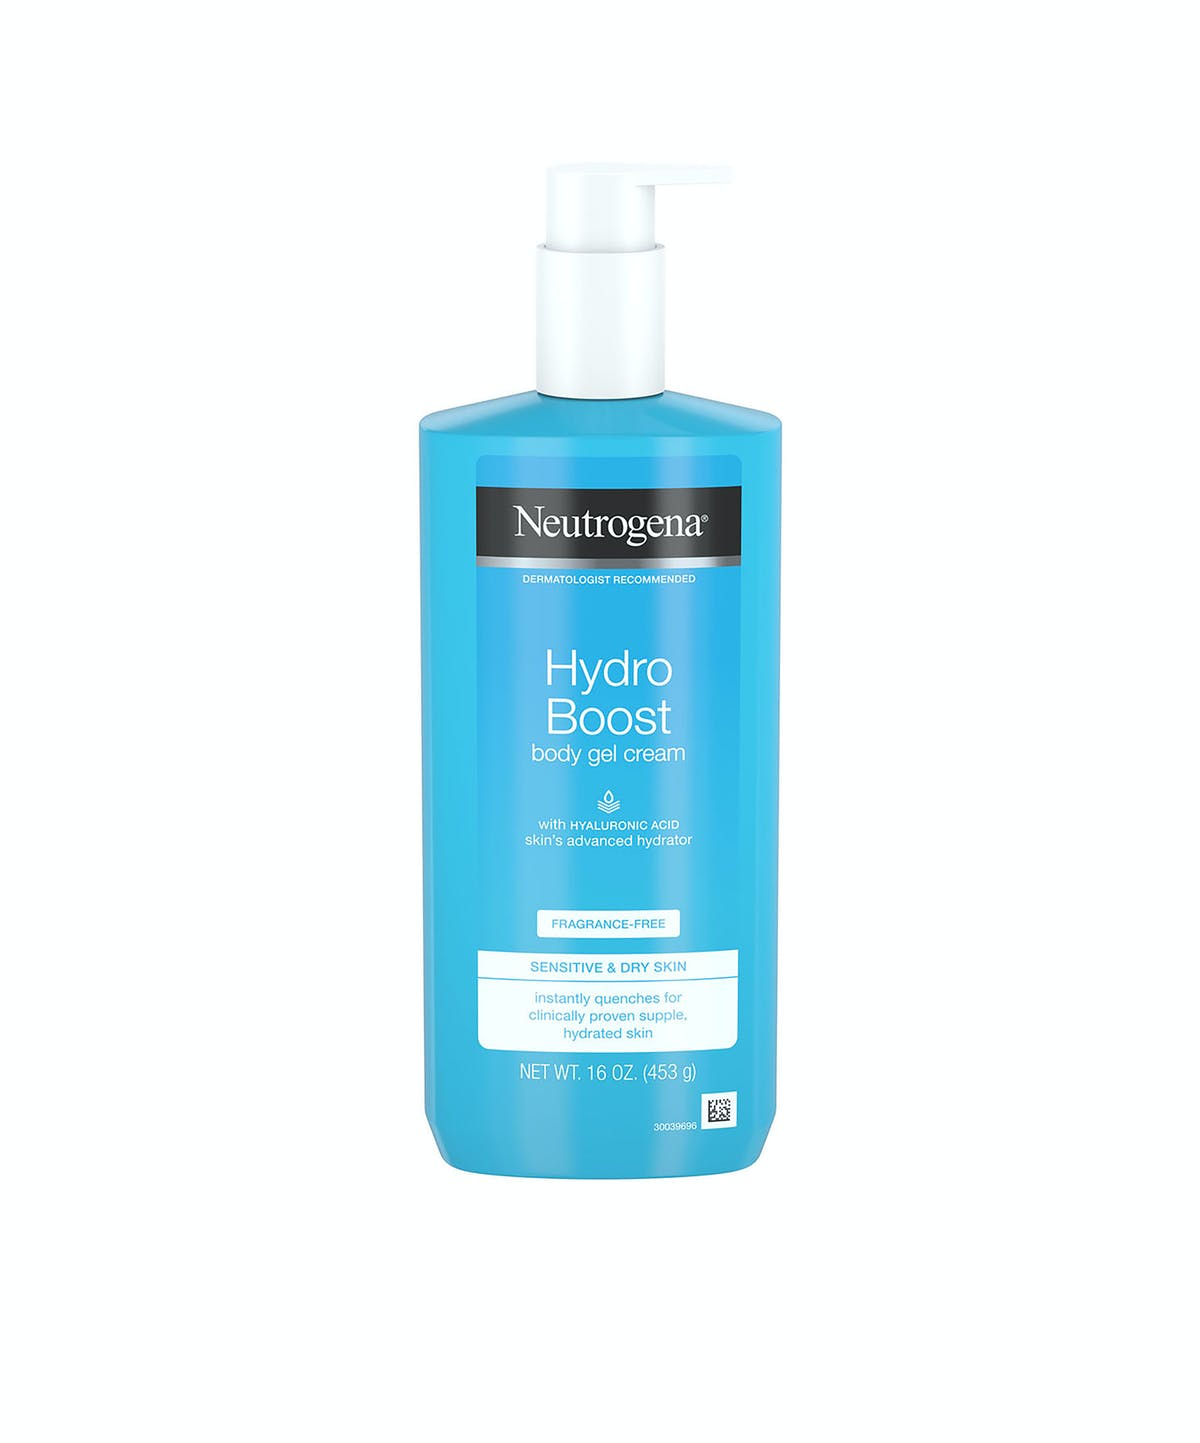 Fragrance Free Body Lotion Hydro Boost Gel Body Cream Neutrogena